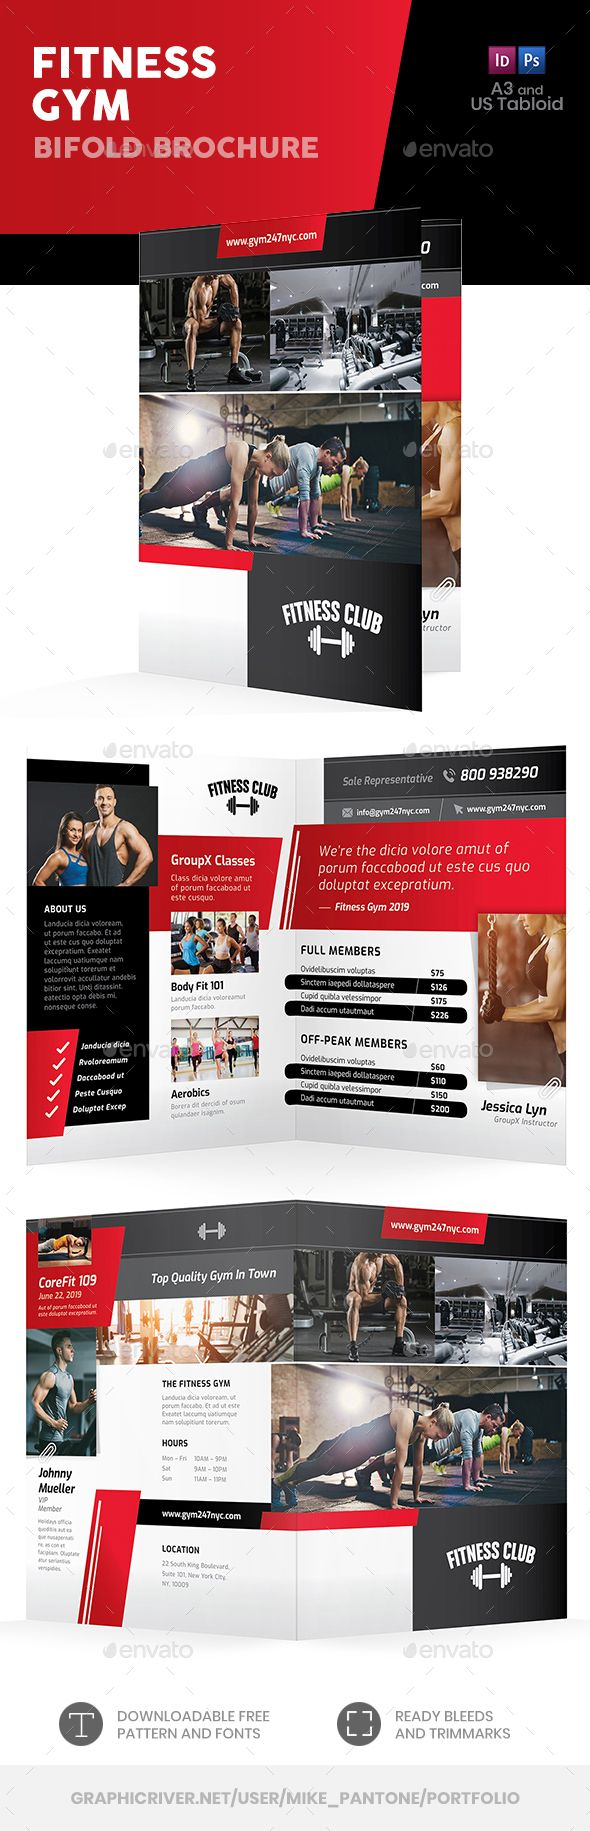 Fitness Gym Bifold / Halffold Brochure 8. Fully editable professional template for an information br...